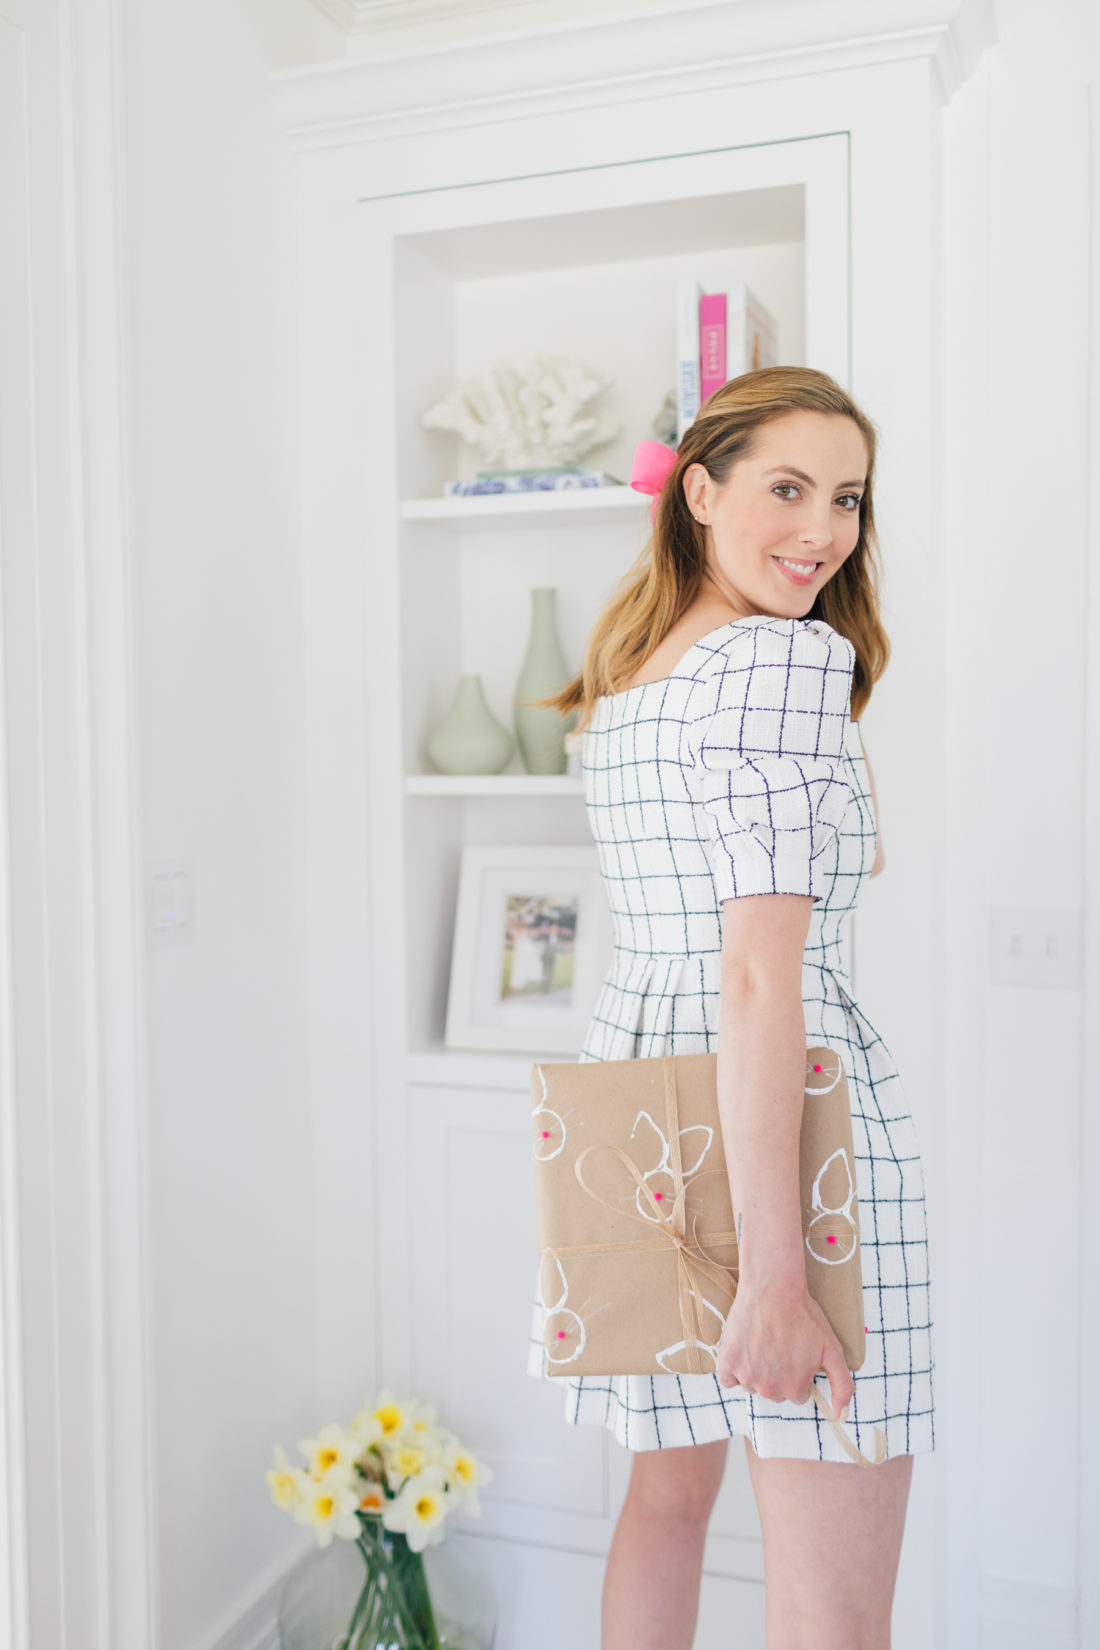 Eva Amurri Martino wraps a gift in stamped Easter wrapping paper